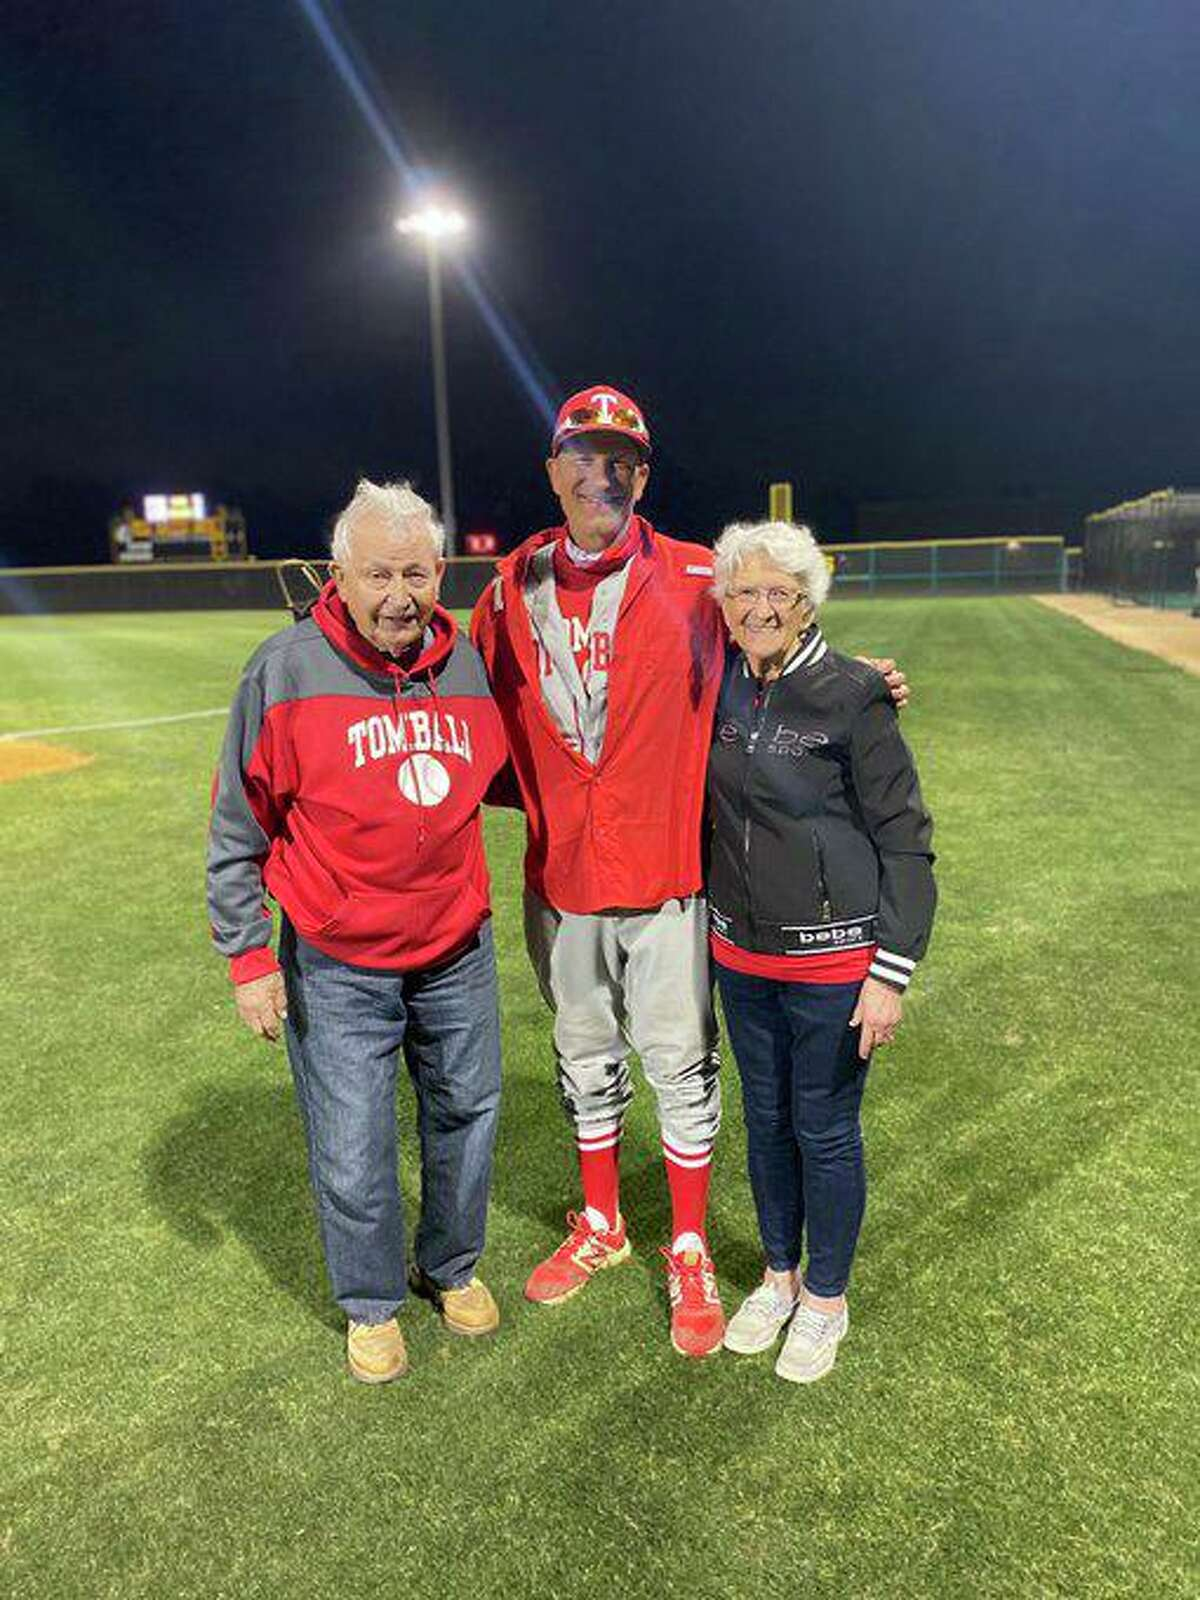 Tomball baseball coach Doug Rush earned his 500th career victory in a 2-0 win against visiting Klein Oak Tuesday, April 6. Rush was named District 15-6A Coach of the Year.